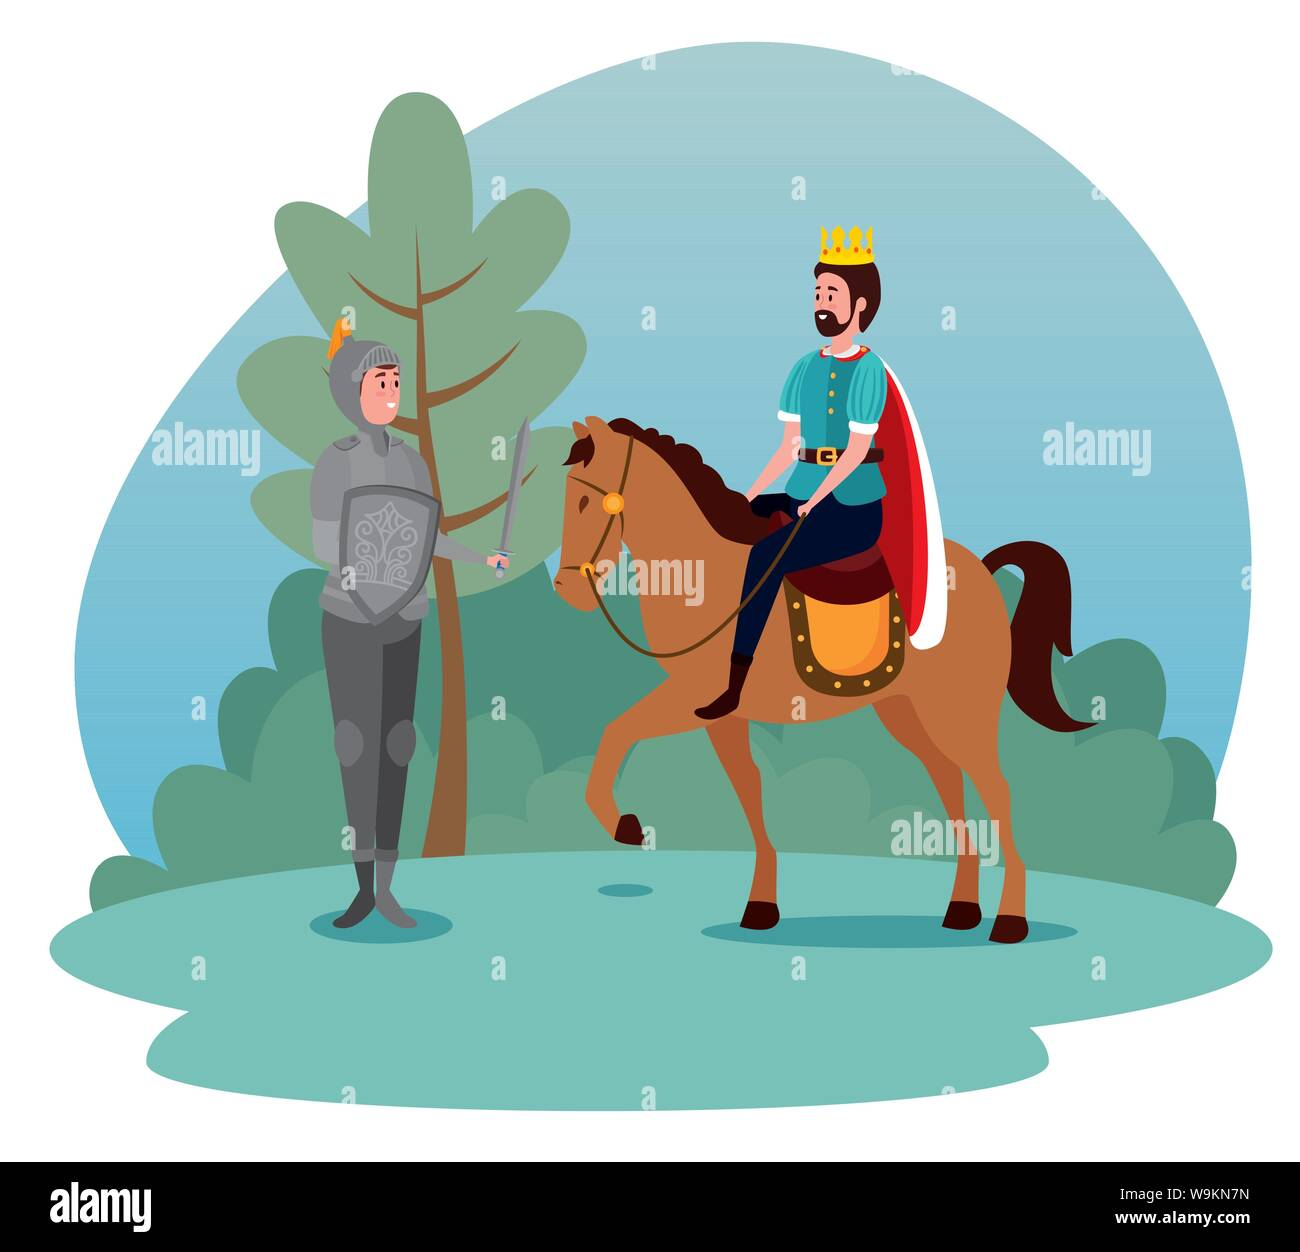 Man King Riding Royal Horse And Sir With Shield And Sword Stock Vector Image Art Alamy